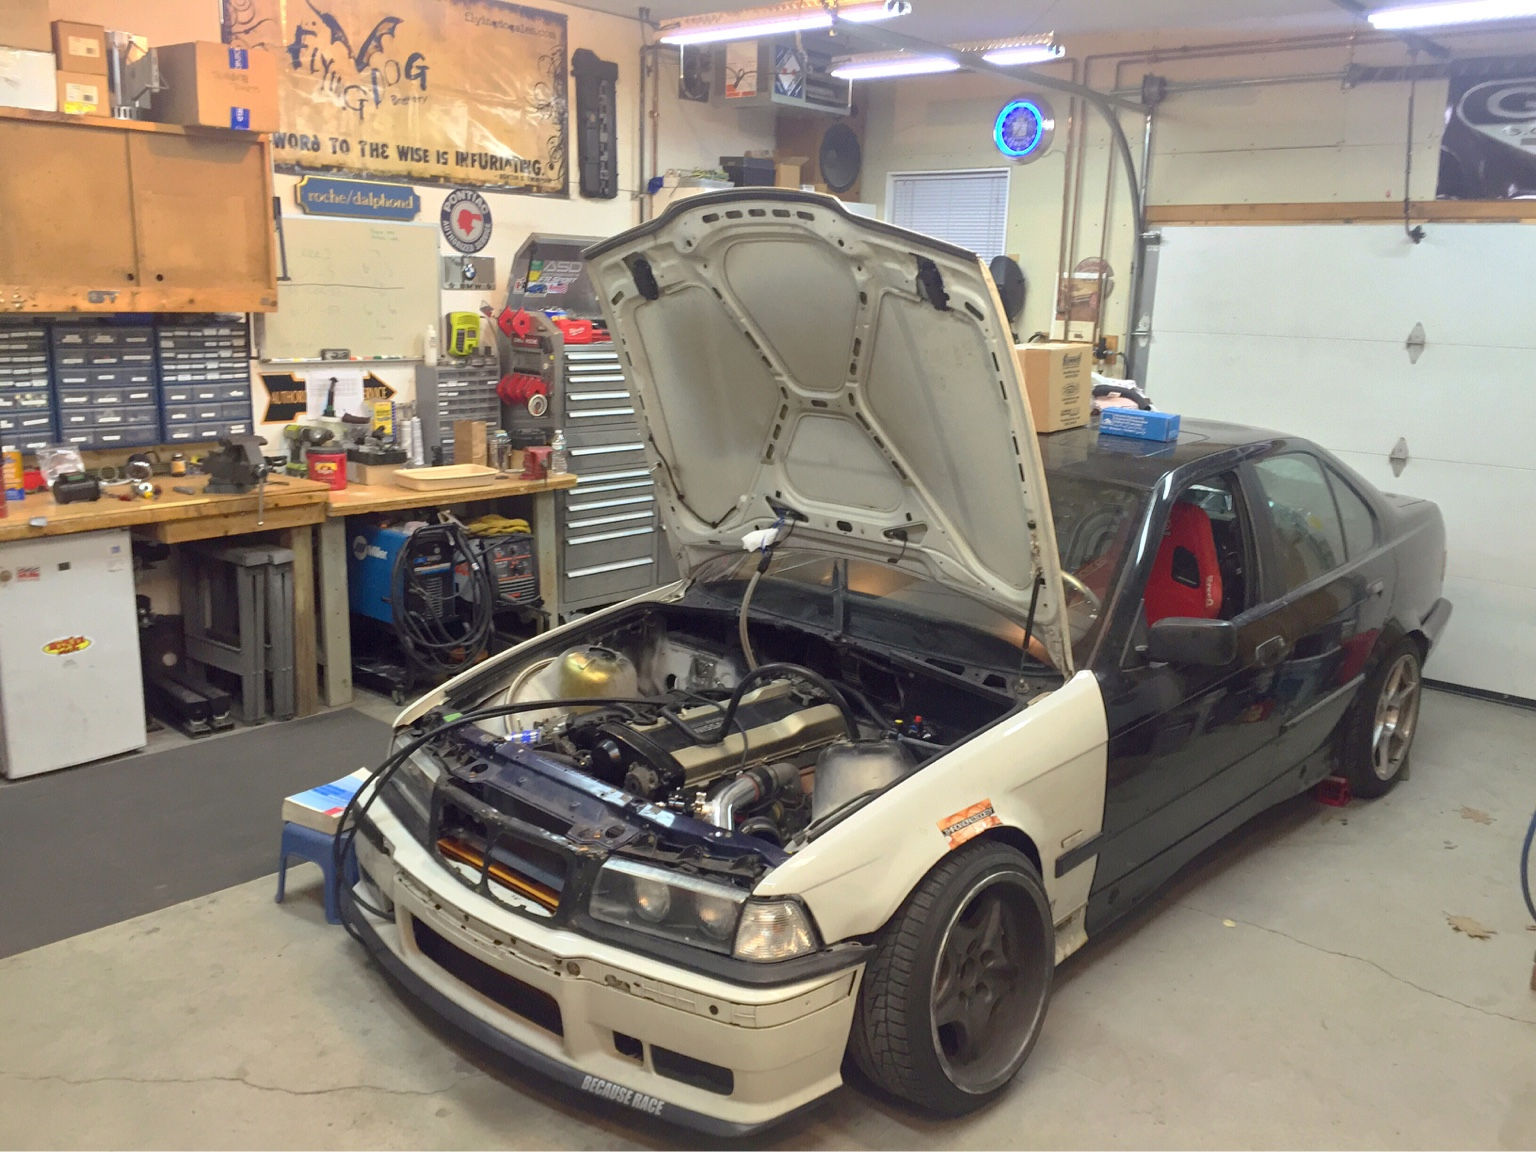 Stateside Rb E36 Page 3 Driftworks Forum Wiring Specialties 2jzgte Harness For Bmw Pro Img